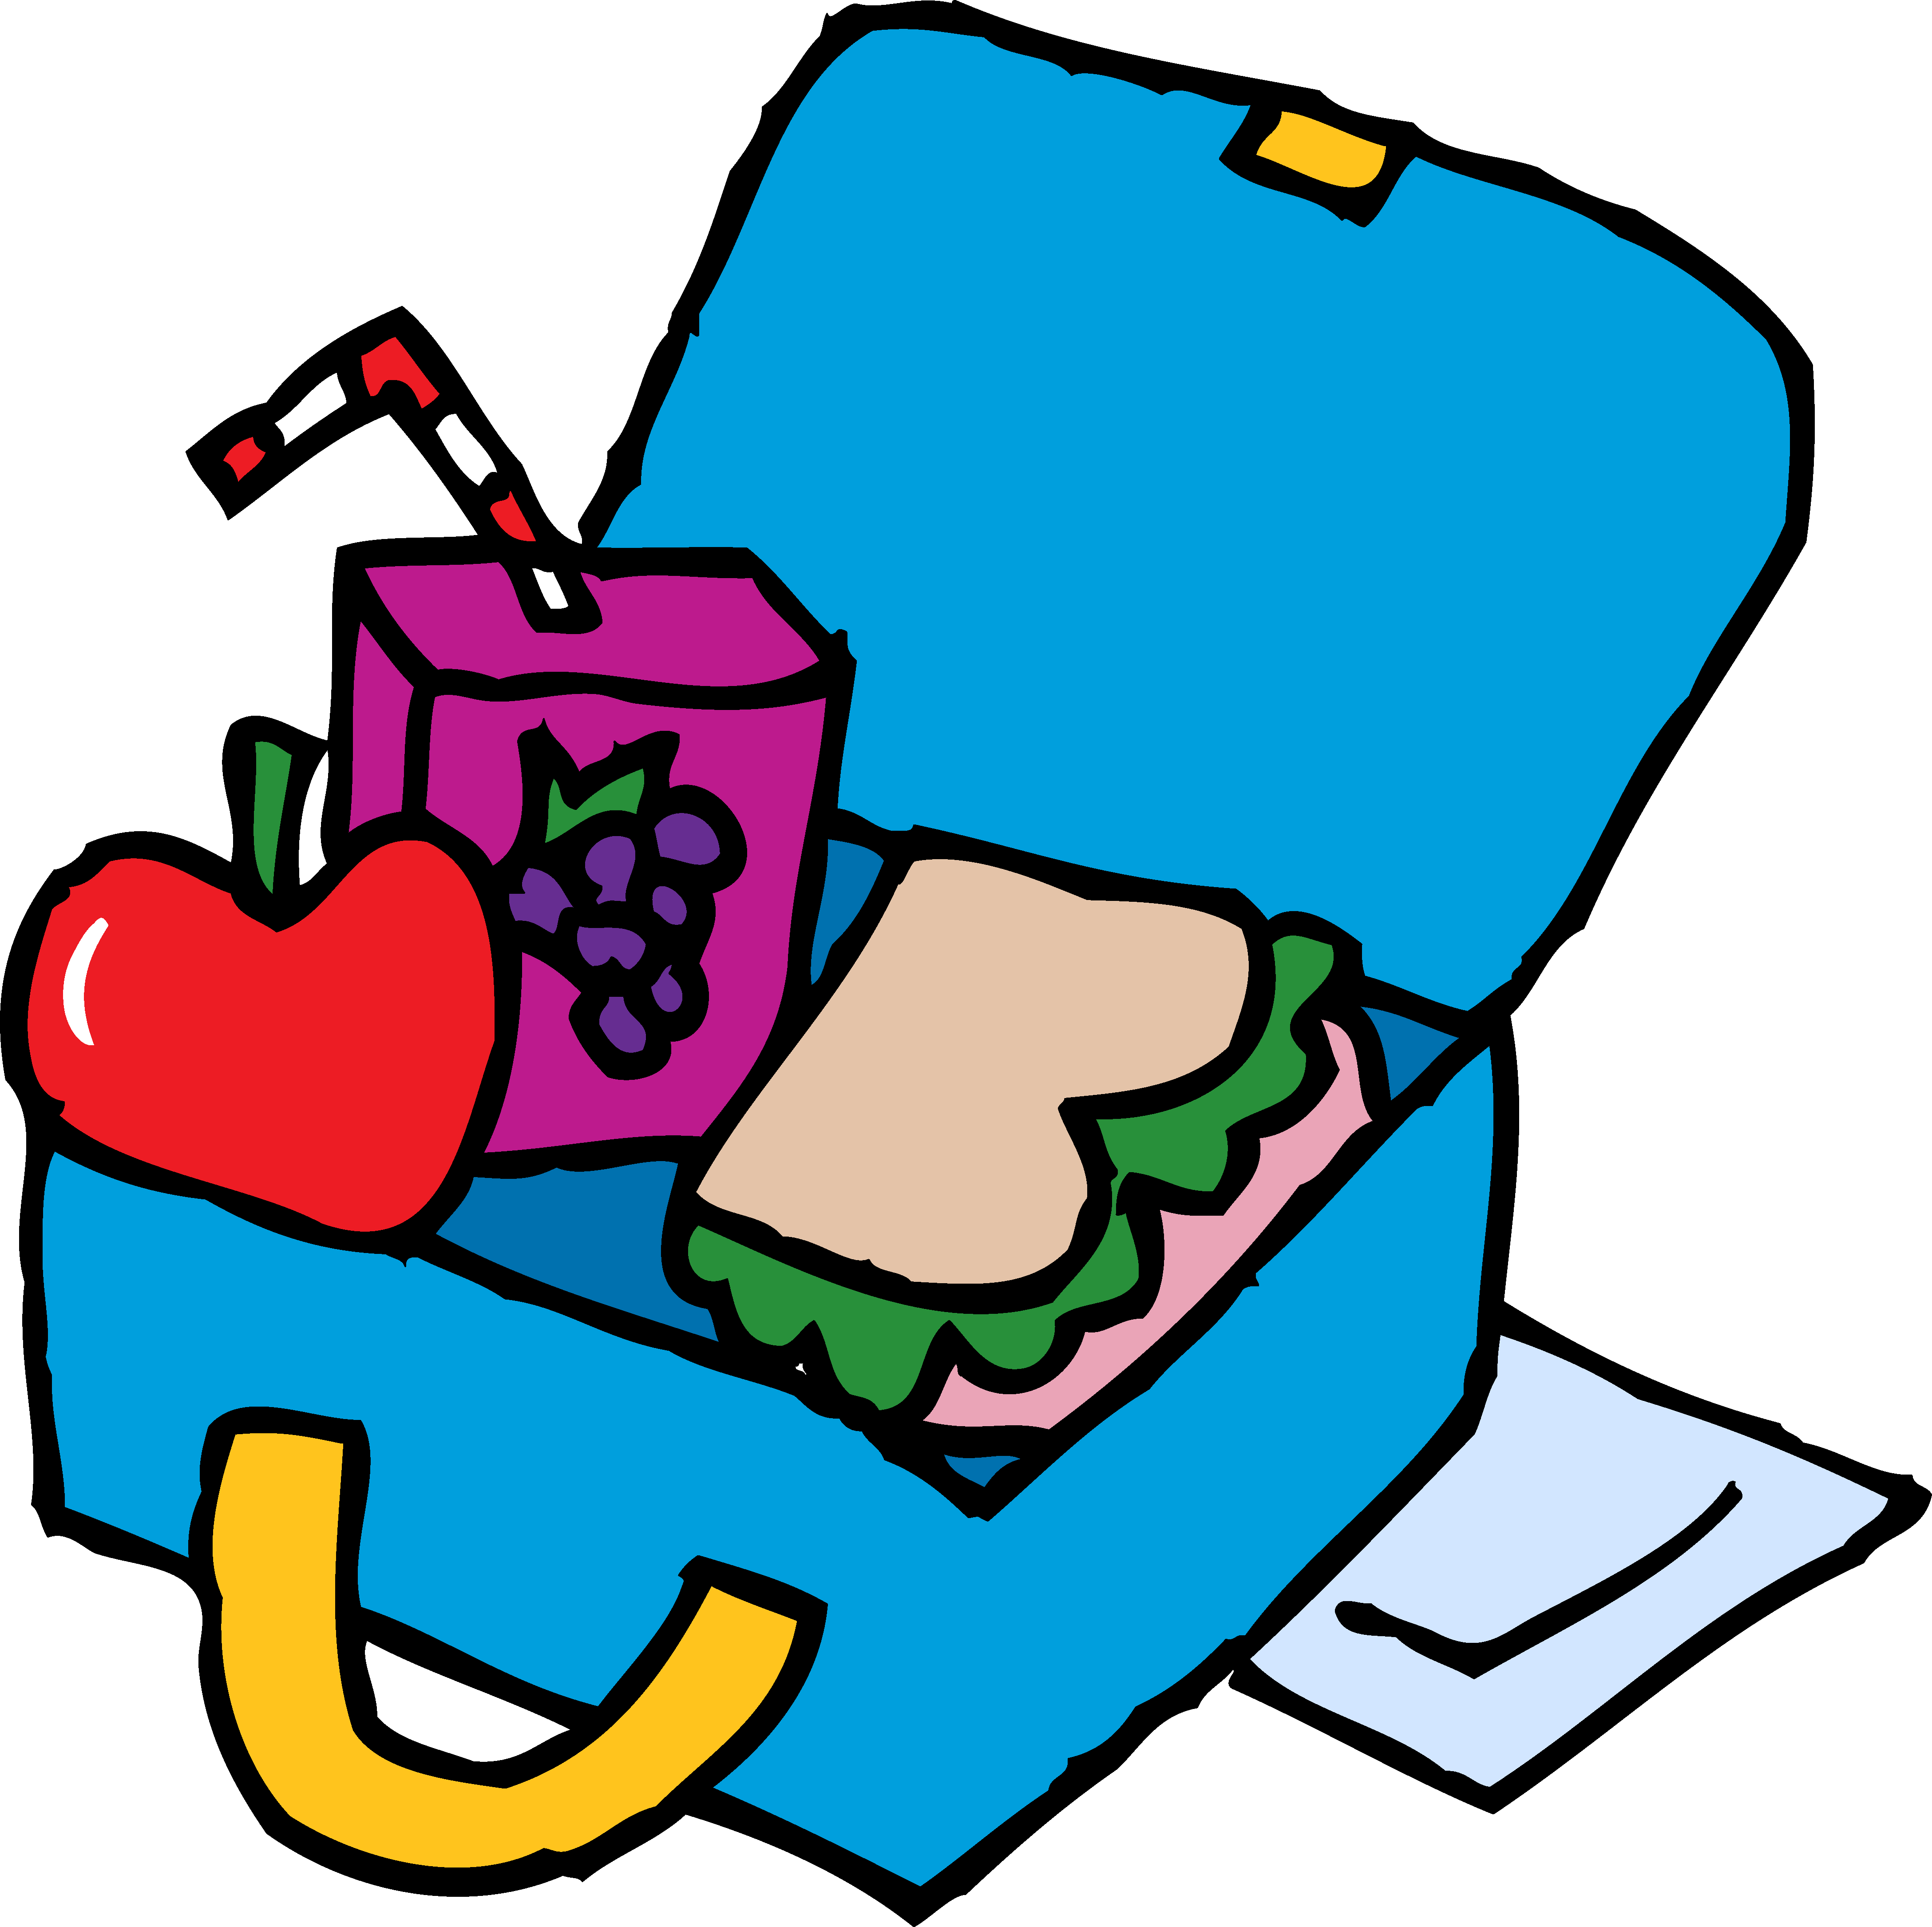 Lunchbox clipart elementary school cafeteria. Lunch at getdrawings com